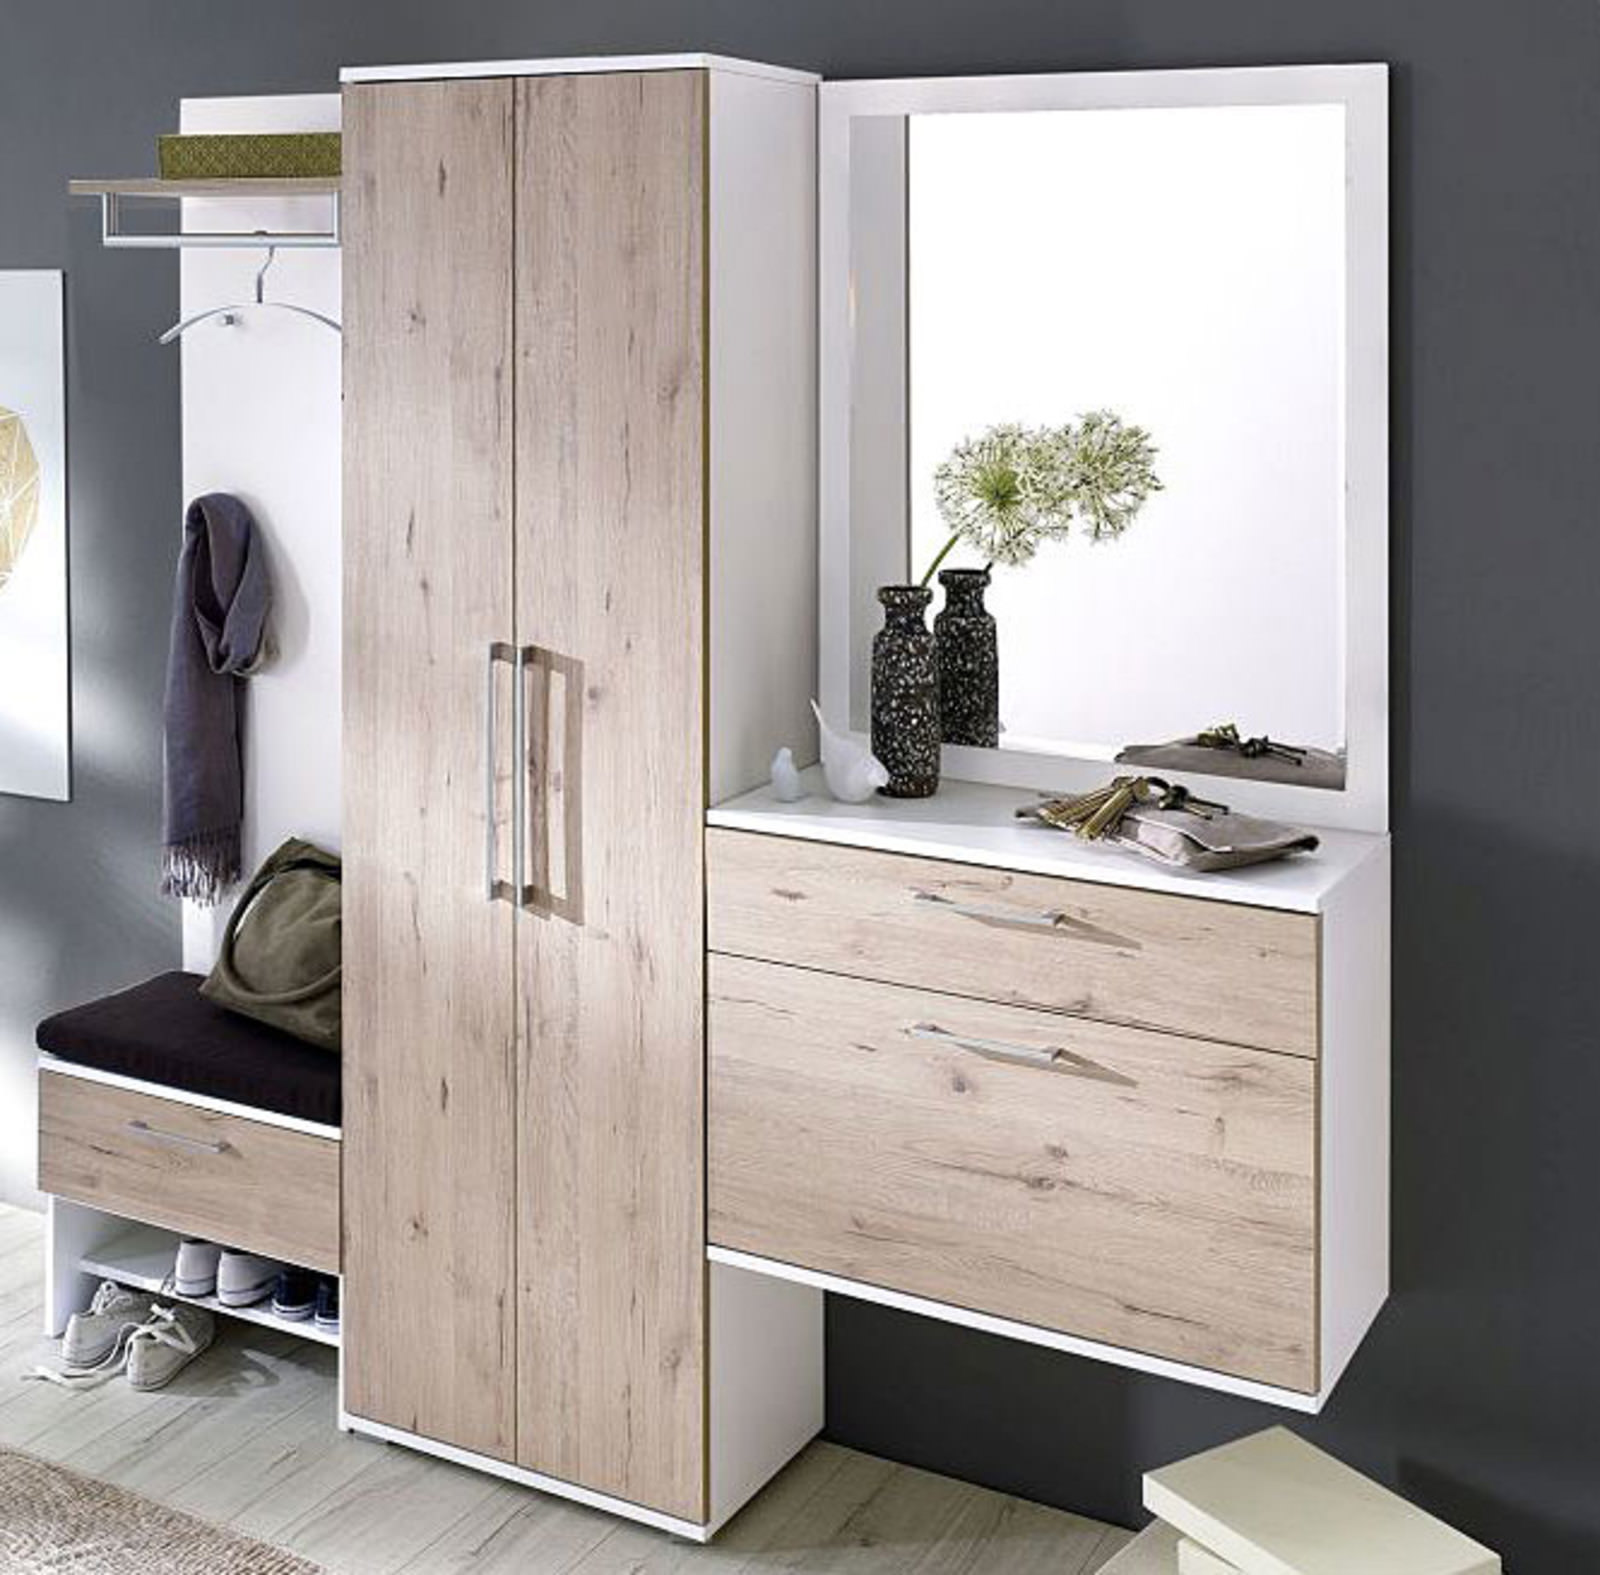 vito garderobenkombination online entdecken schaffrath. Black Bedroom Furniture Sets. Home Design Ideas